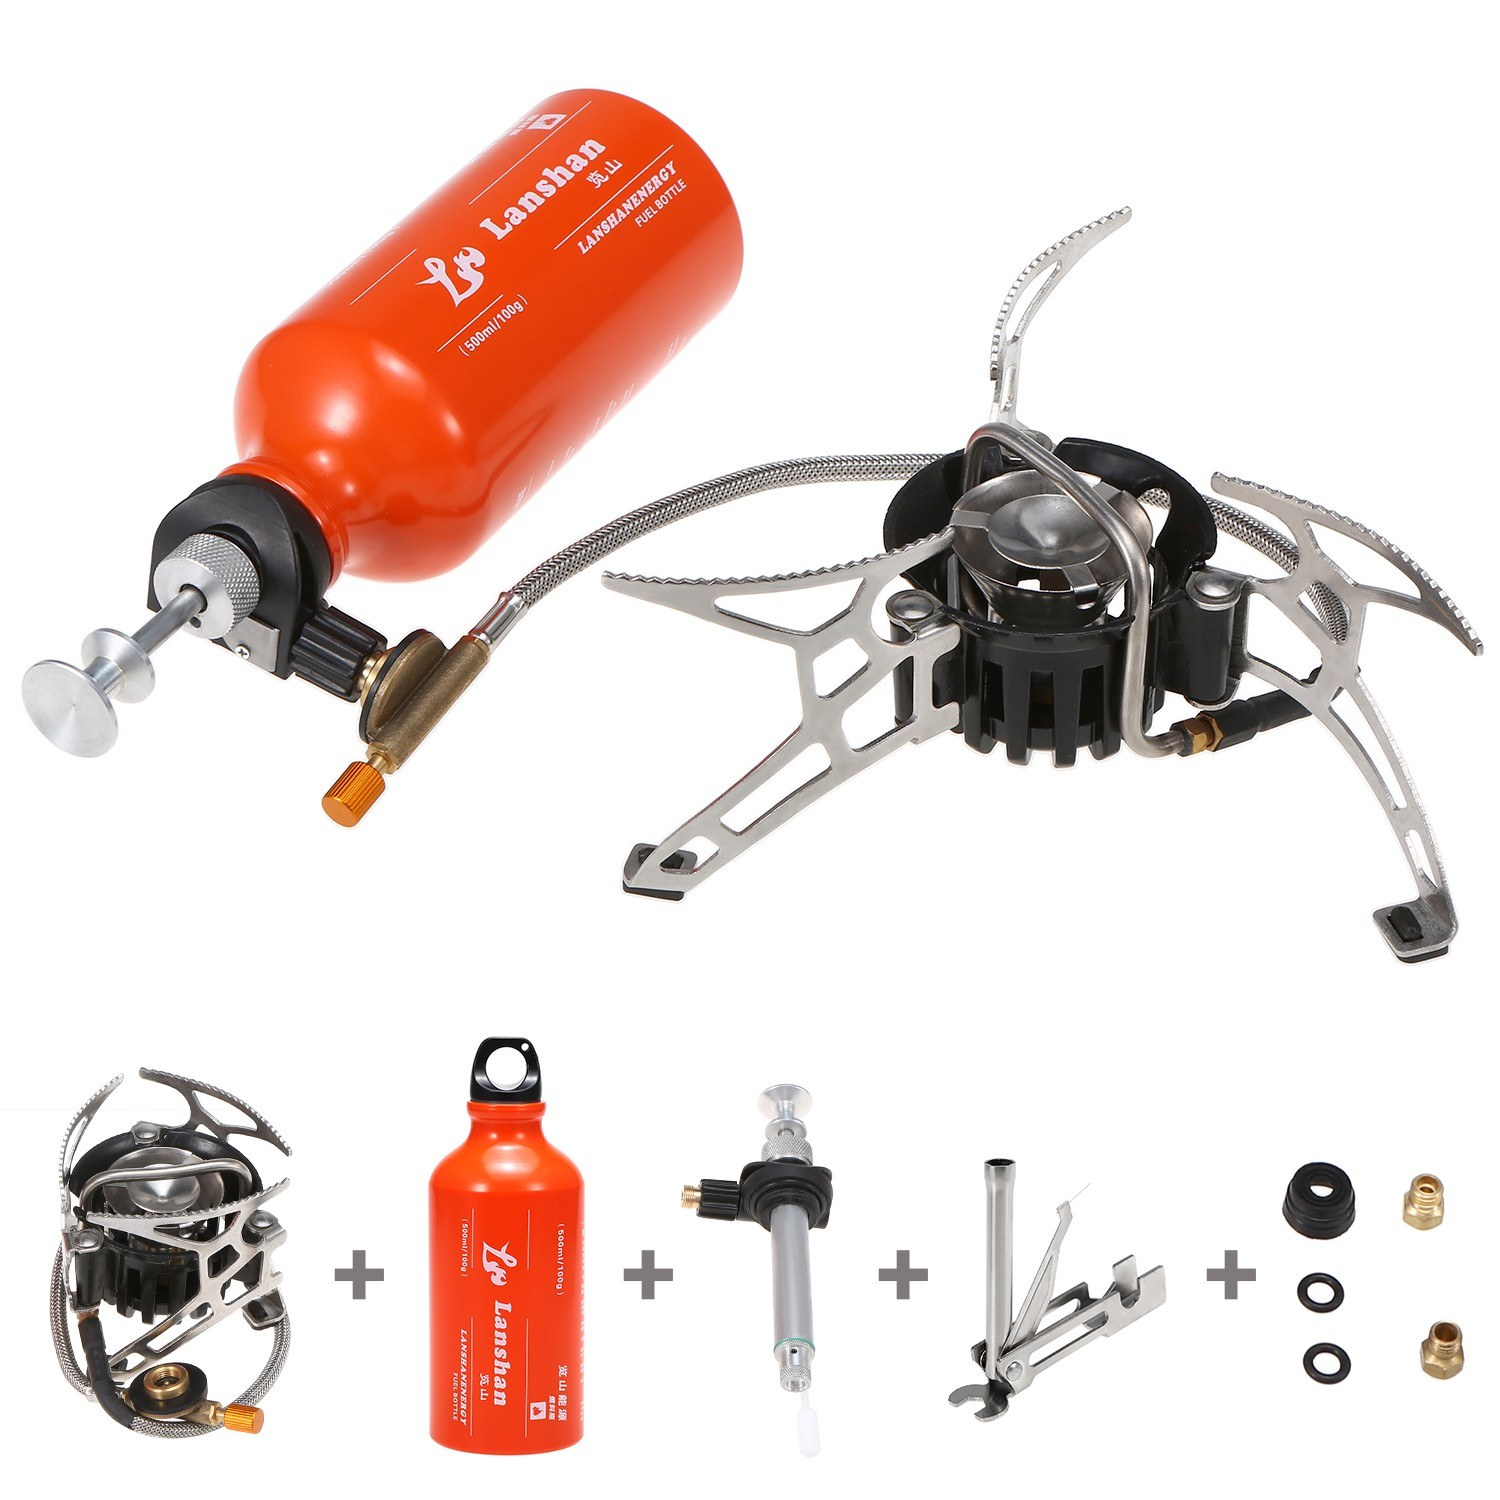 tomtop.com - 39% OFF Outdoor Camping Multi Fuel Oil Stove, Limited Offers $52.69